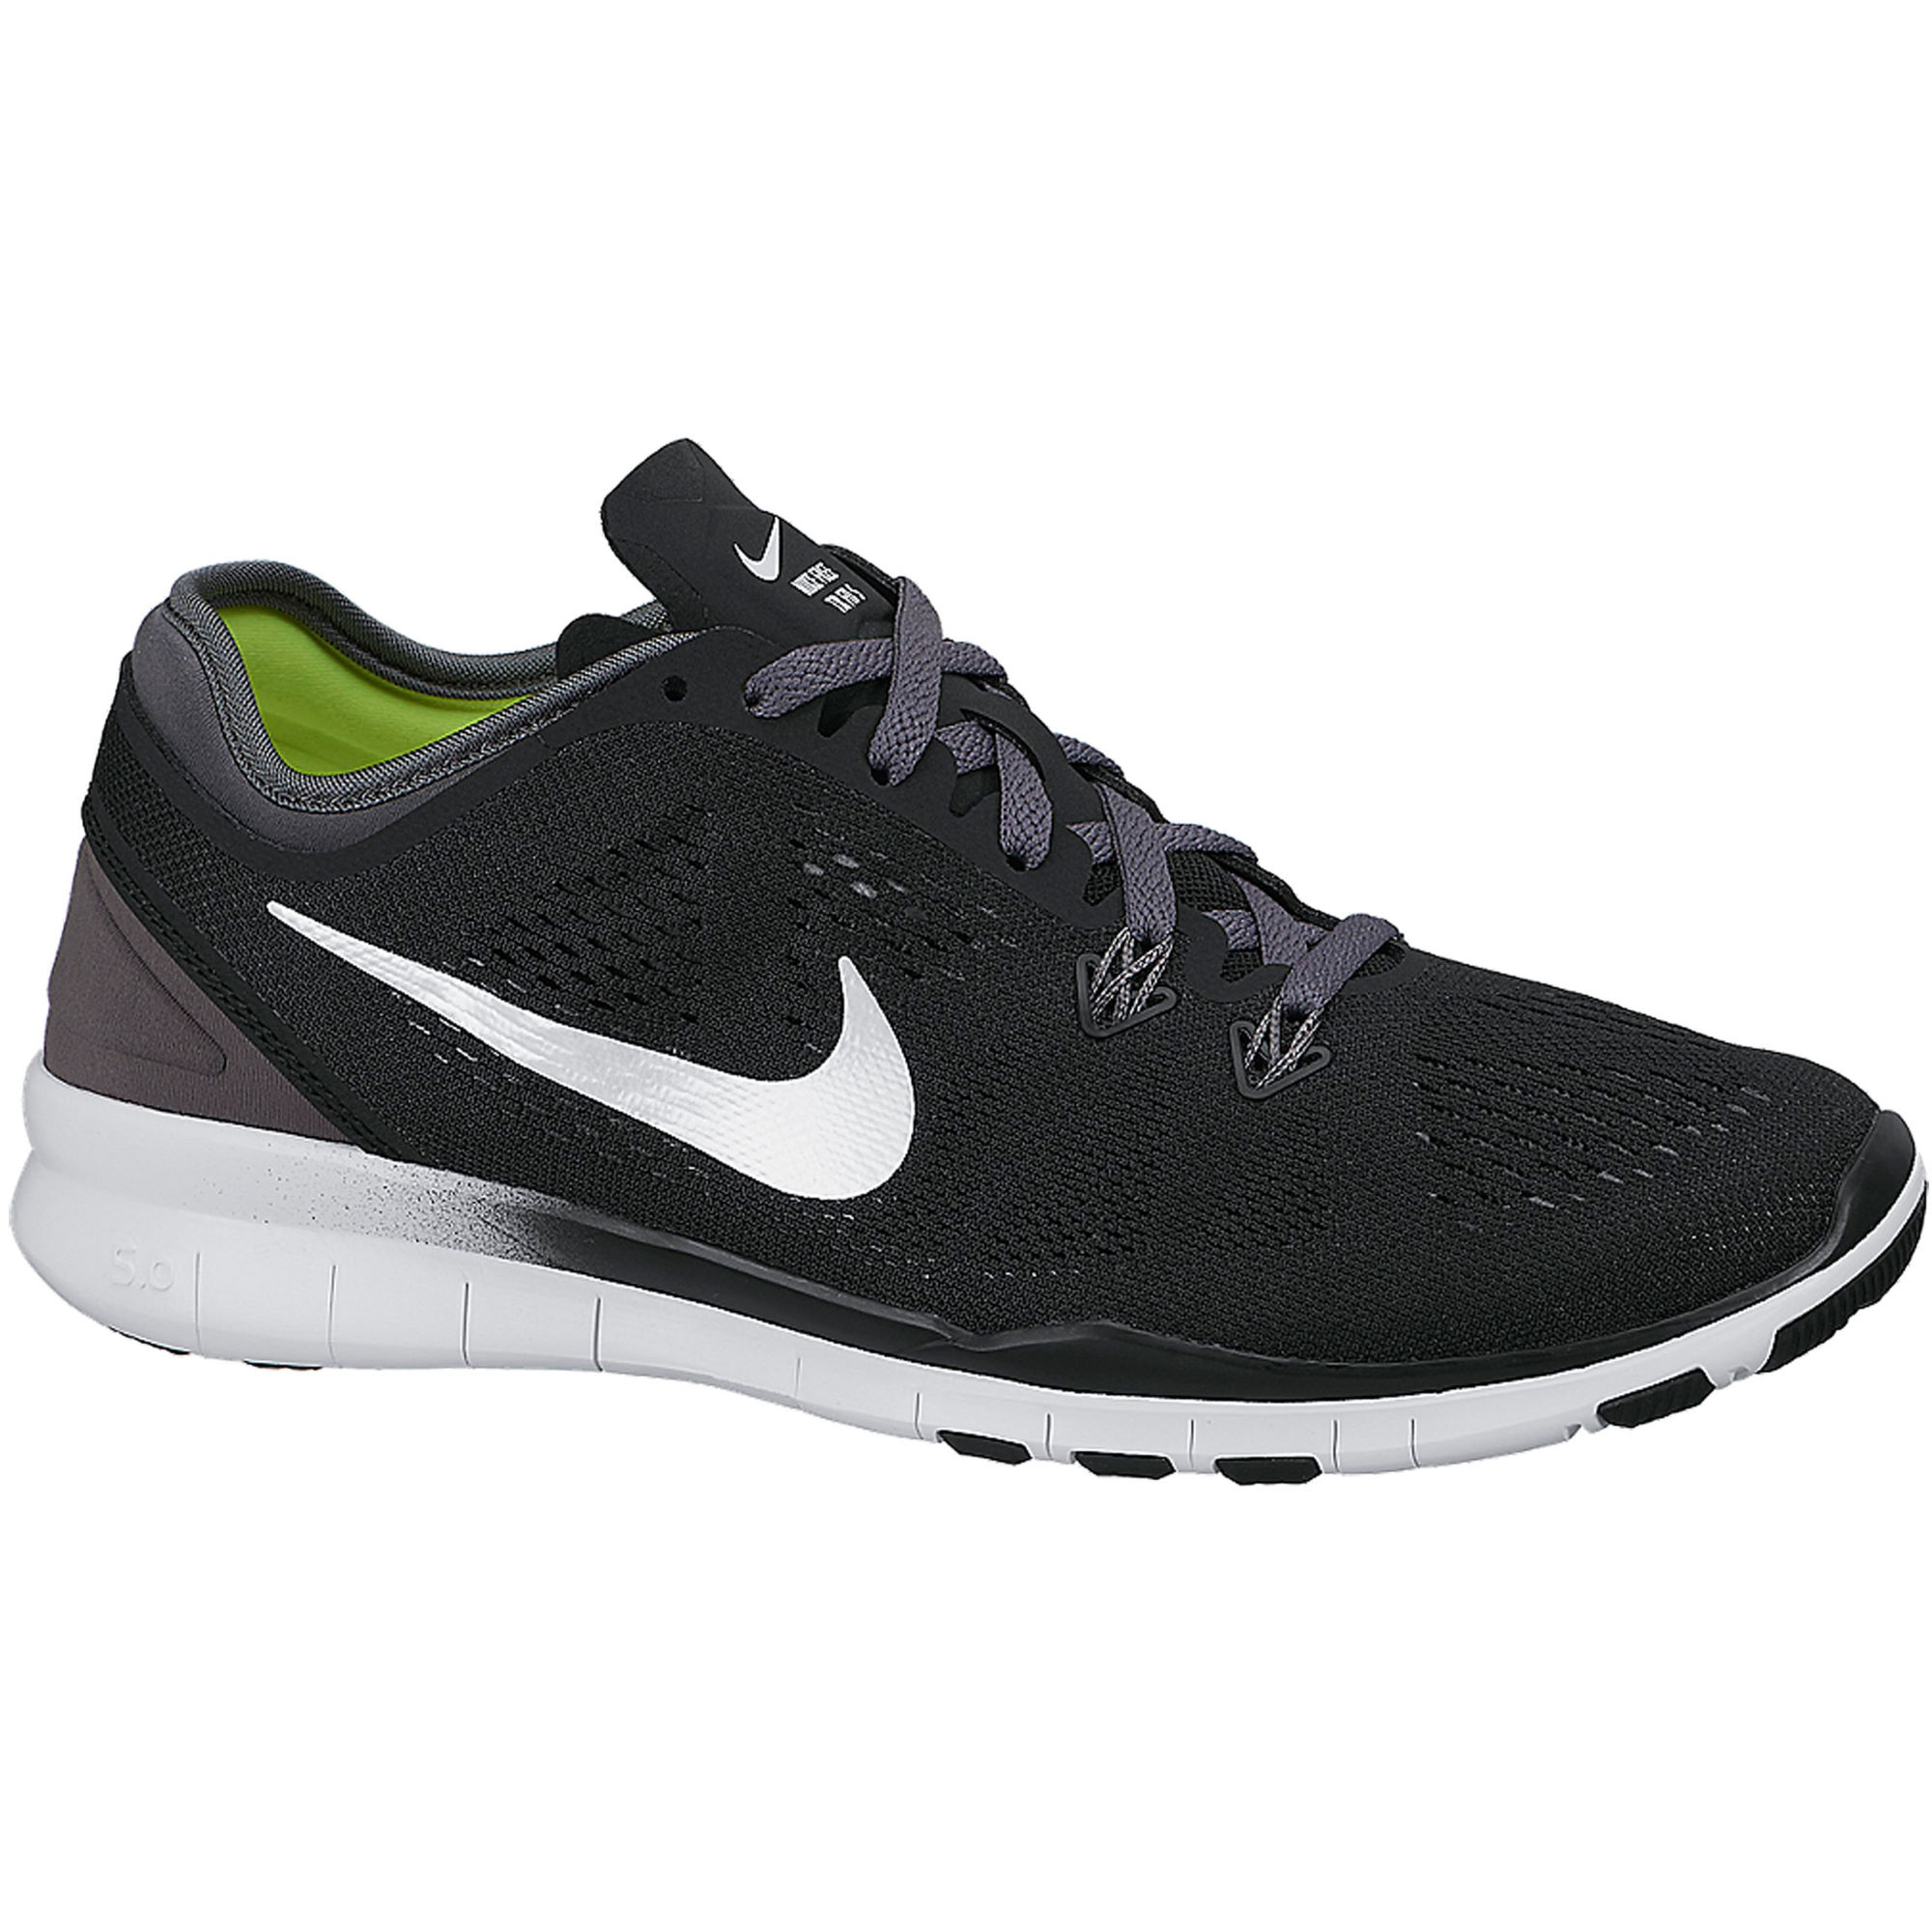 wiggle nike womens free 50 tr fit 5 shoes sp15